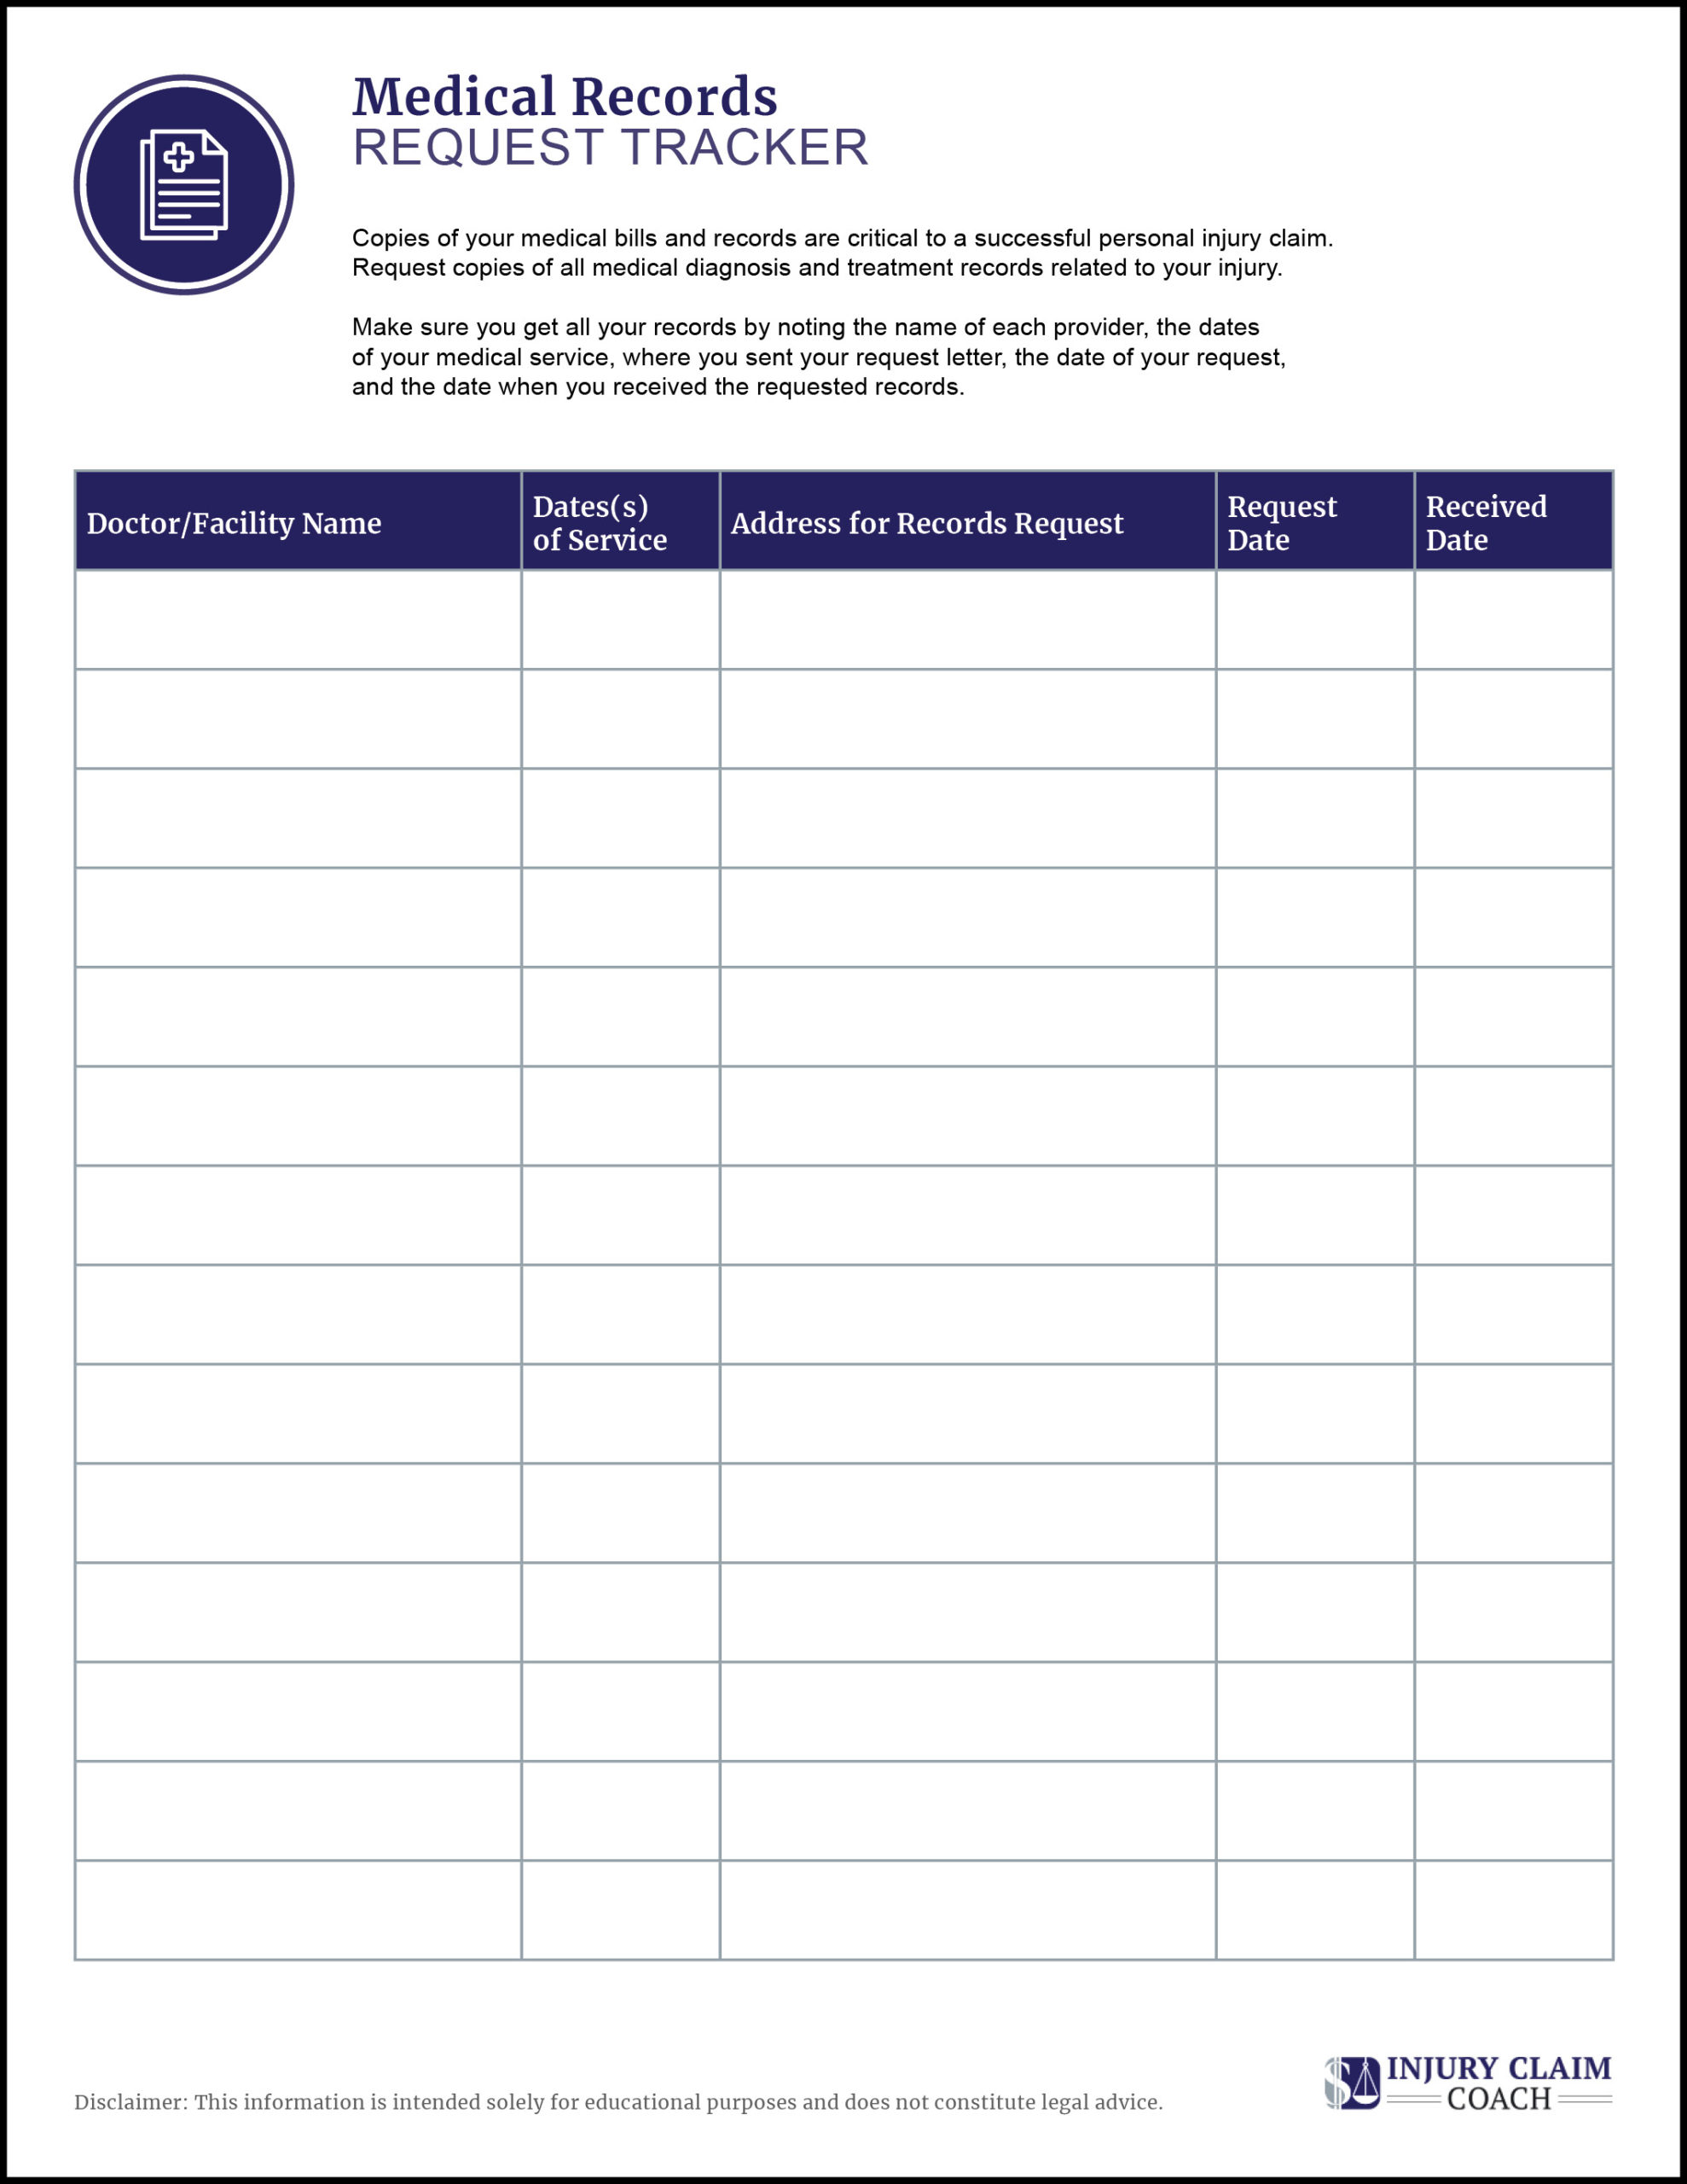 Medical records request tracking log